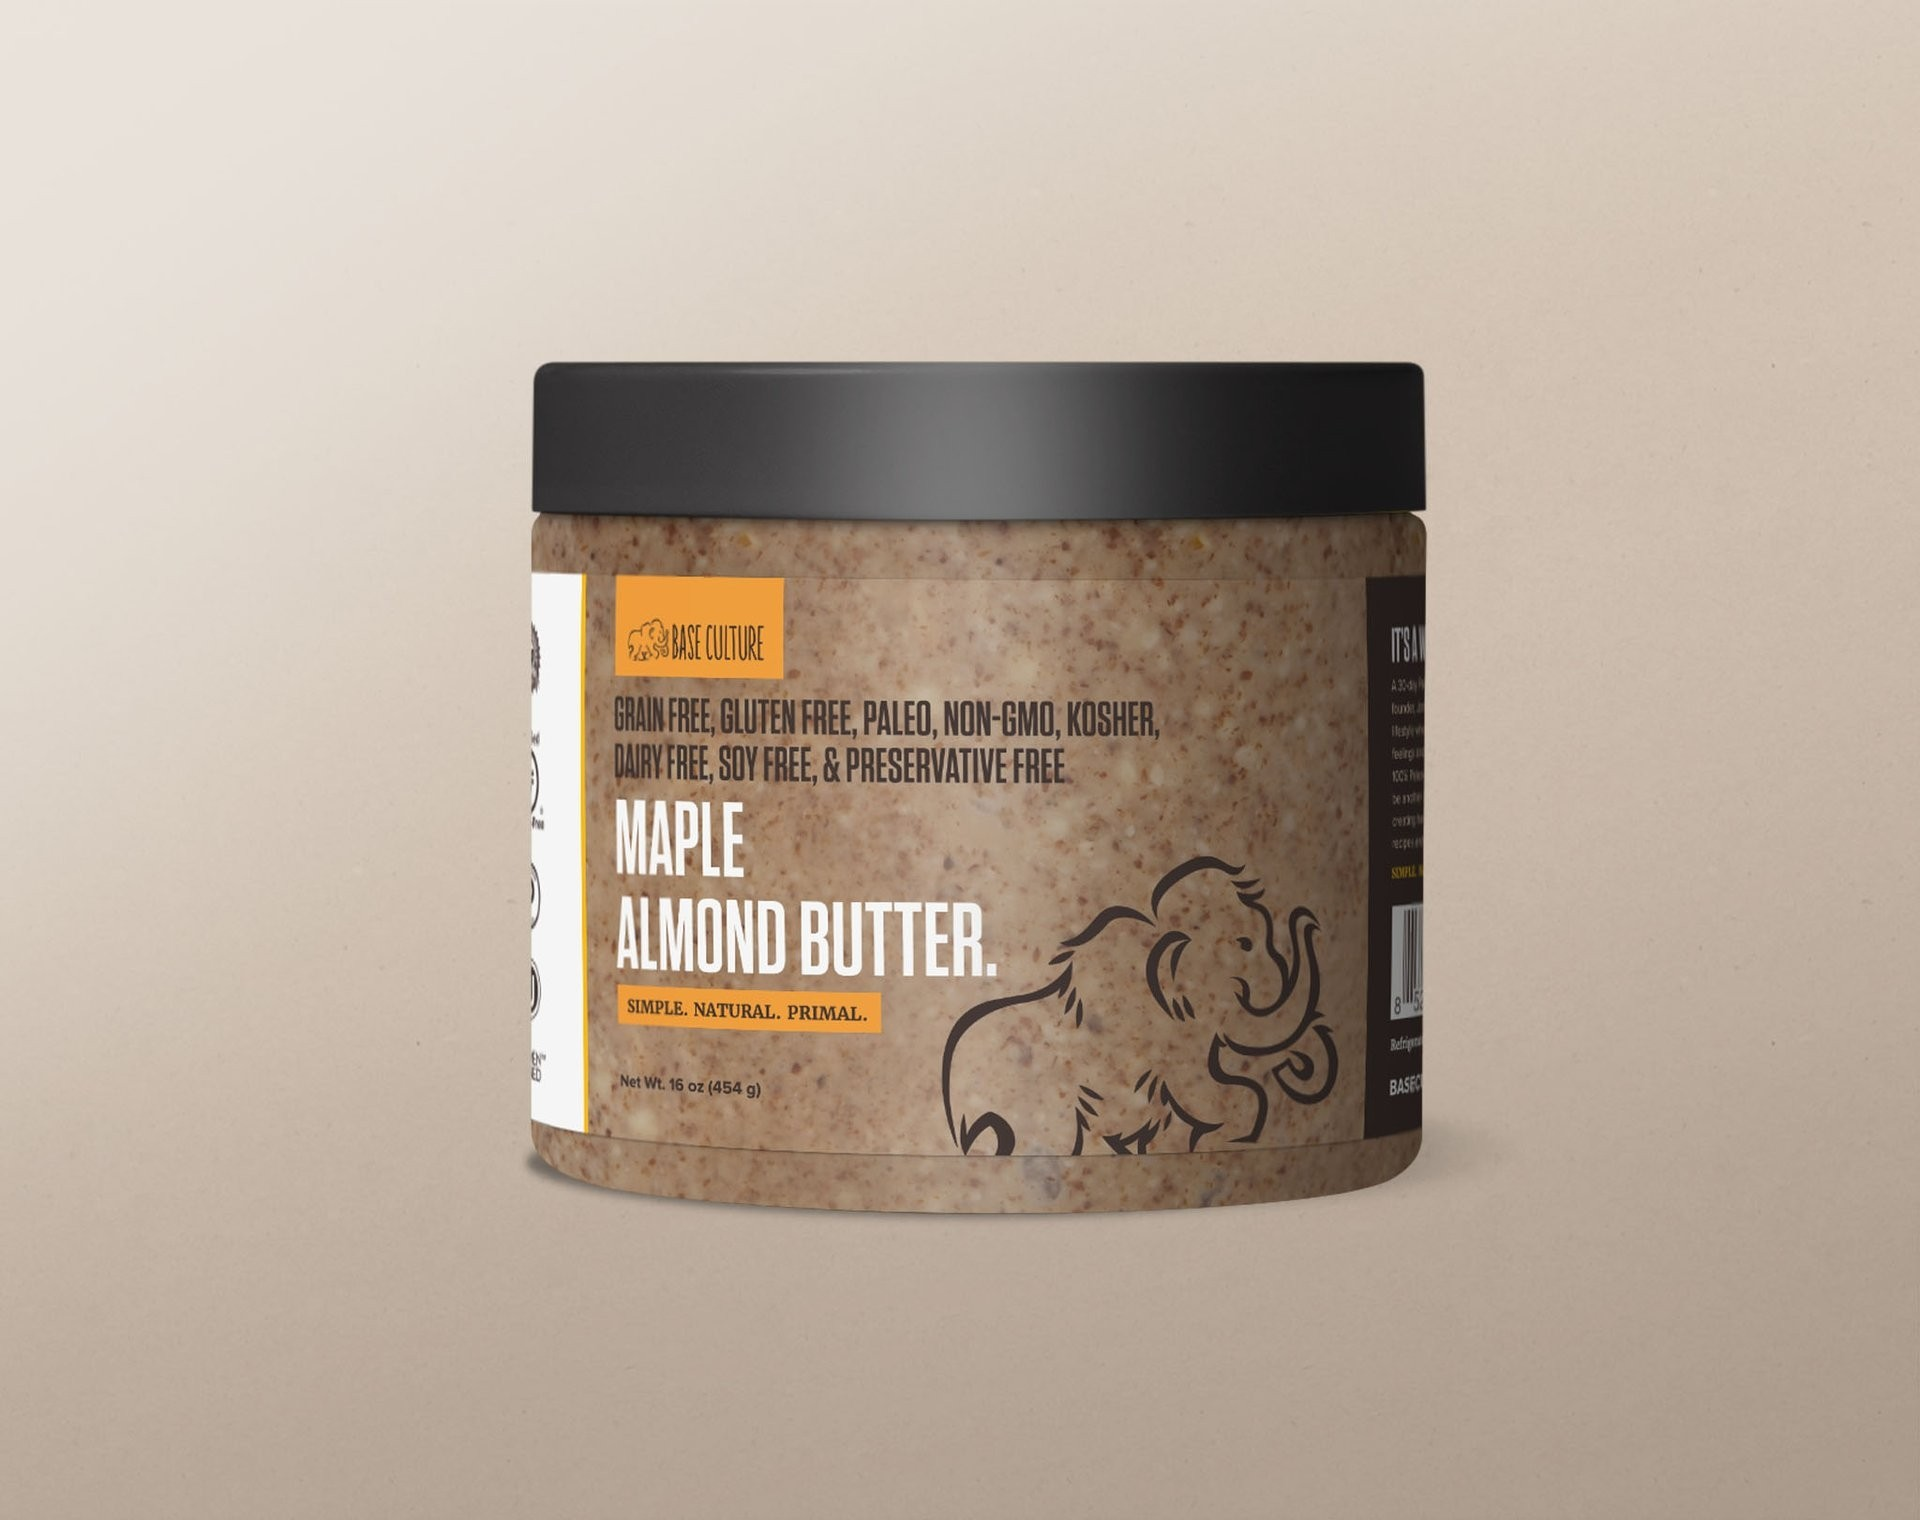 Base Culture 100% Paleo & Gluten Free Almond Butter, Maple Almond, 16 Ounce